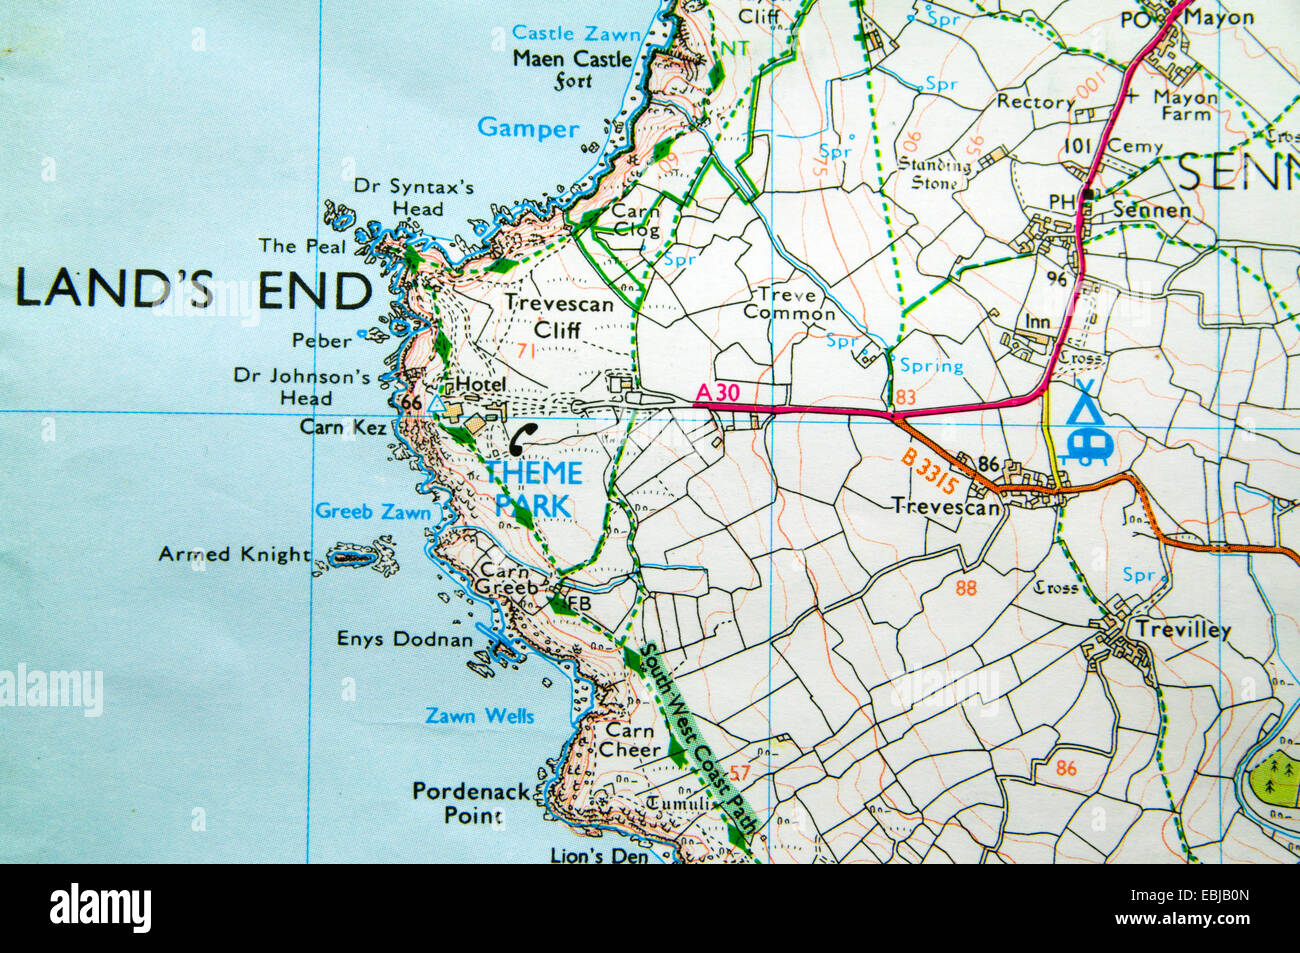 Lands End England Map.Ordnance Survey Map Of Lands End Cornwall England Stock Photo